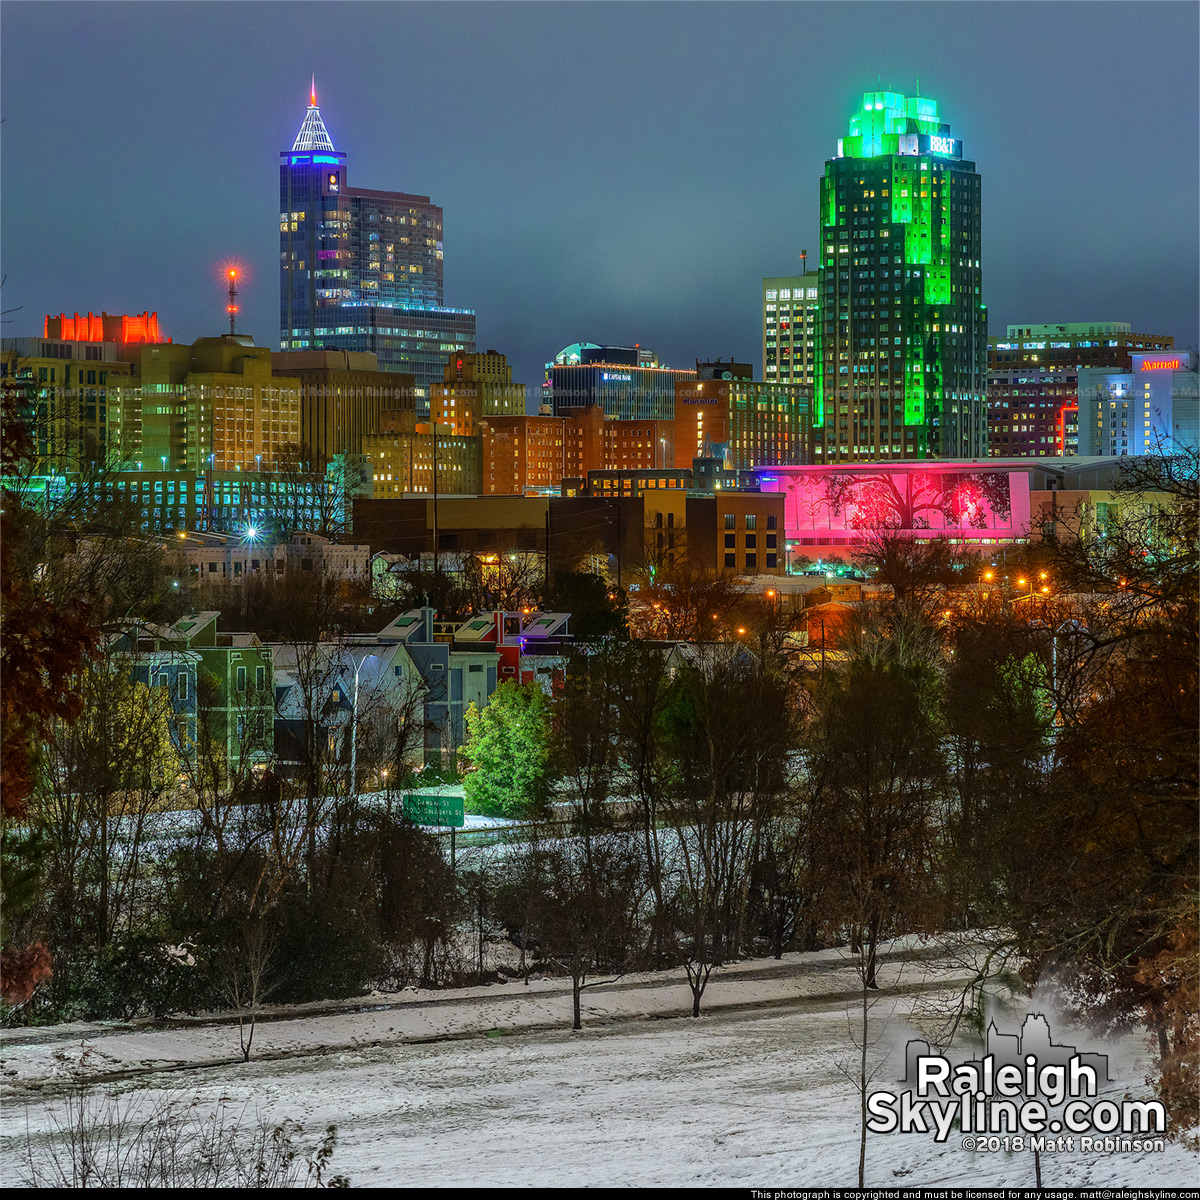 Downtown Raleigh from Dix Hill at night with snow cover